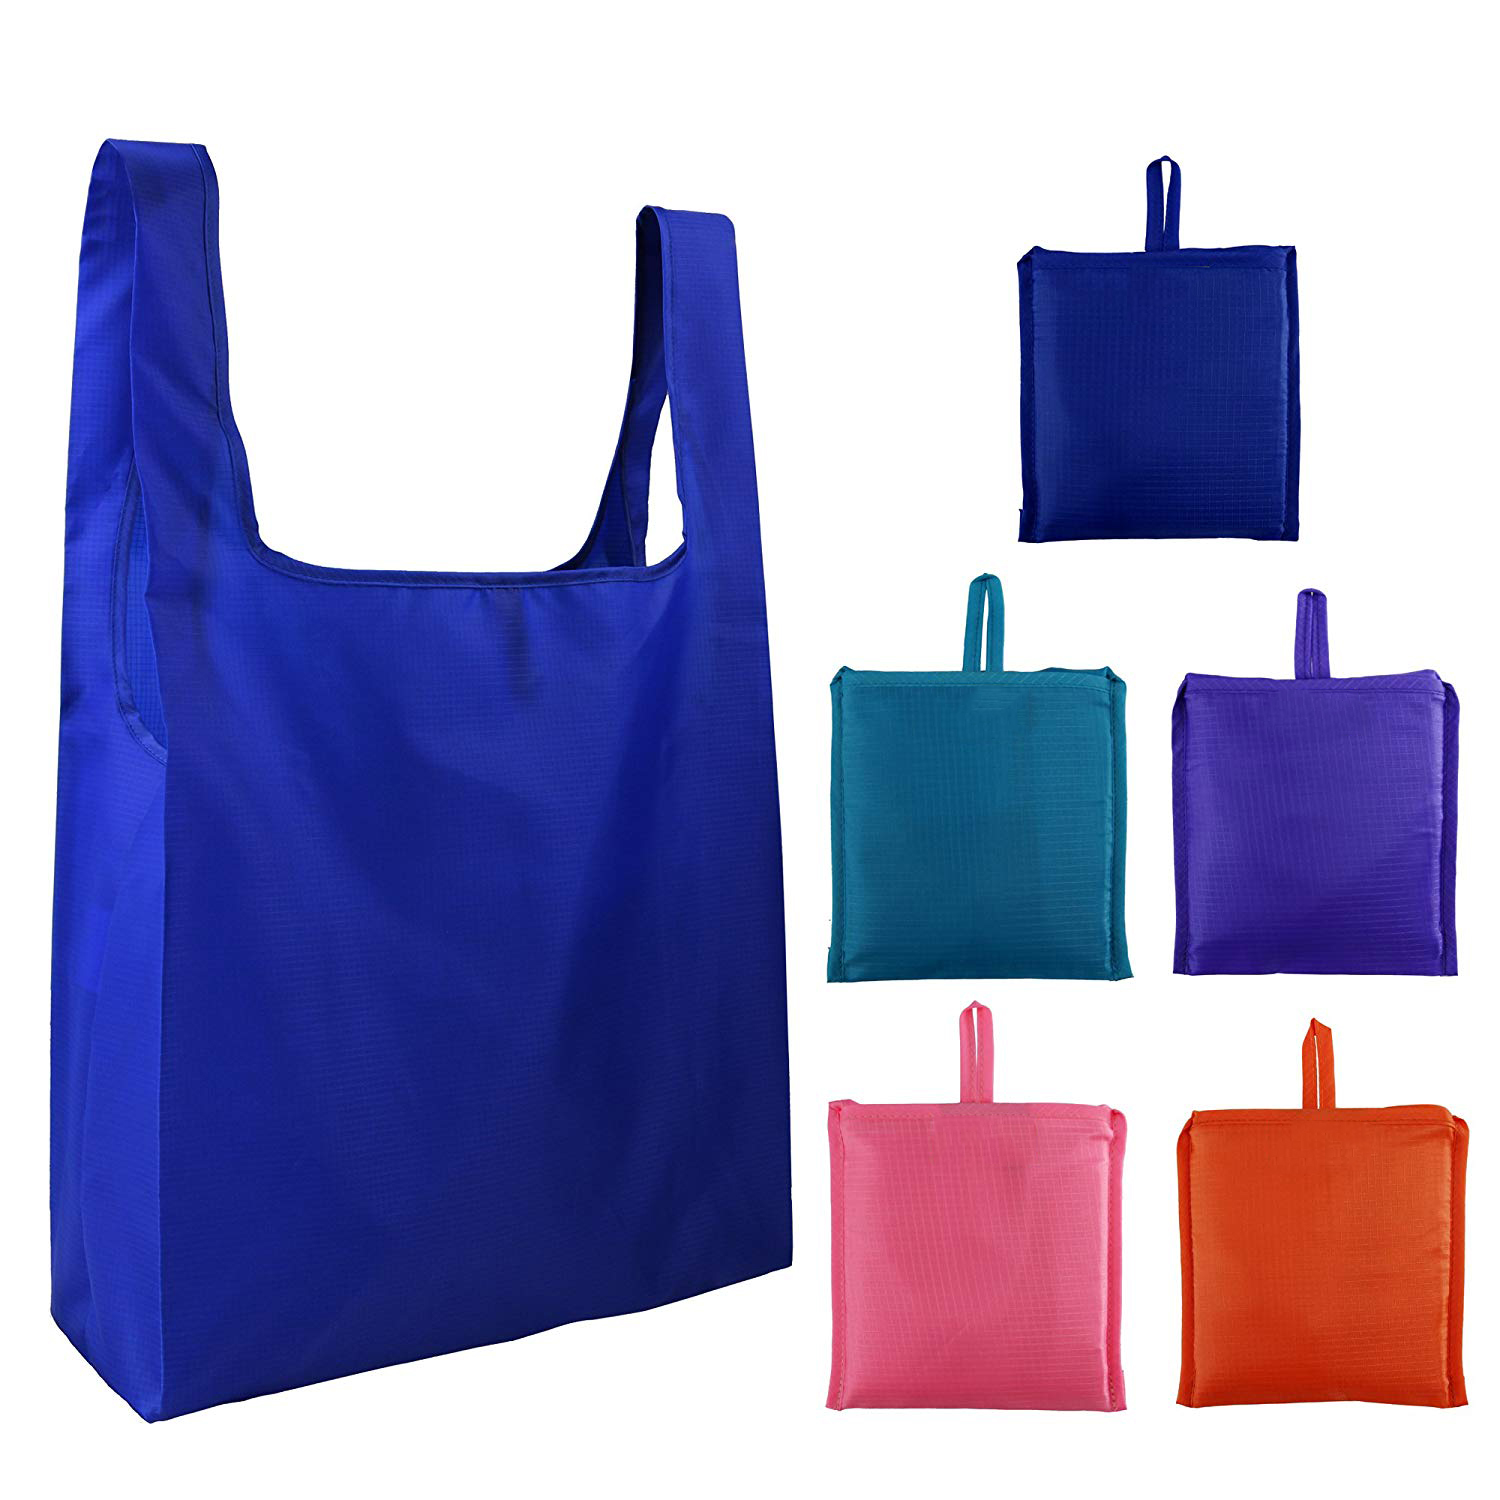 Washable Durable eco friendly waterproof grocery folding nylon foldable reusable shopping bag